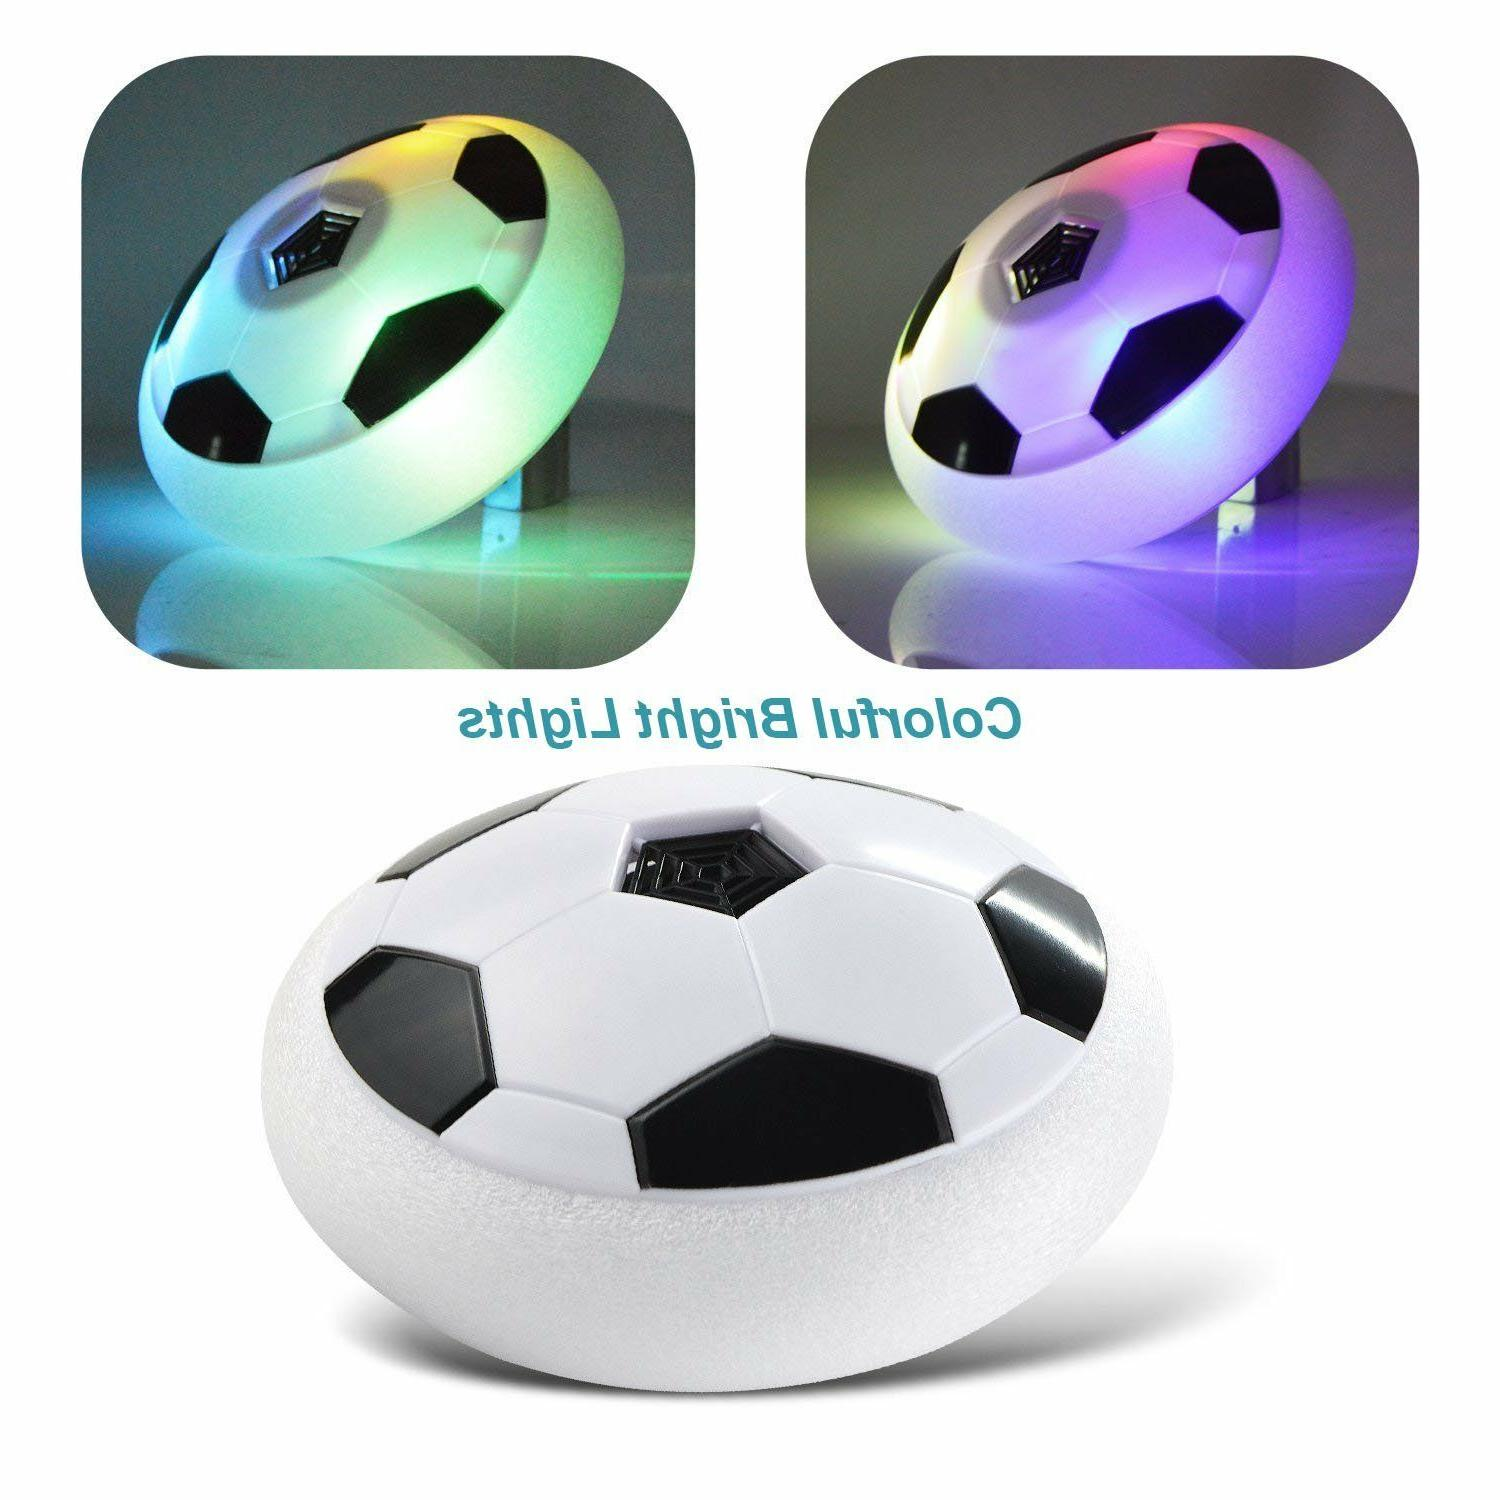 Disk LED 5 9 10 Year Old Age Cool Gift